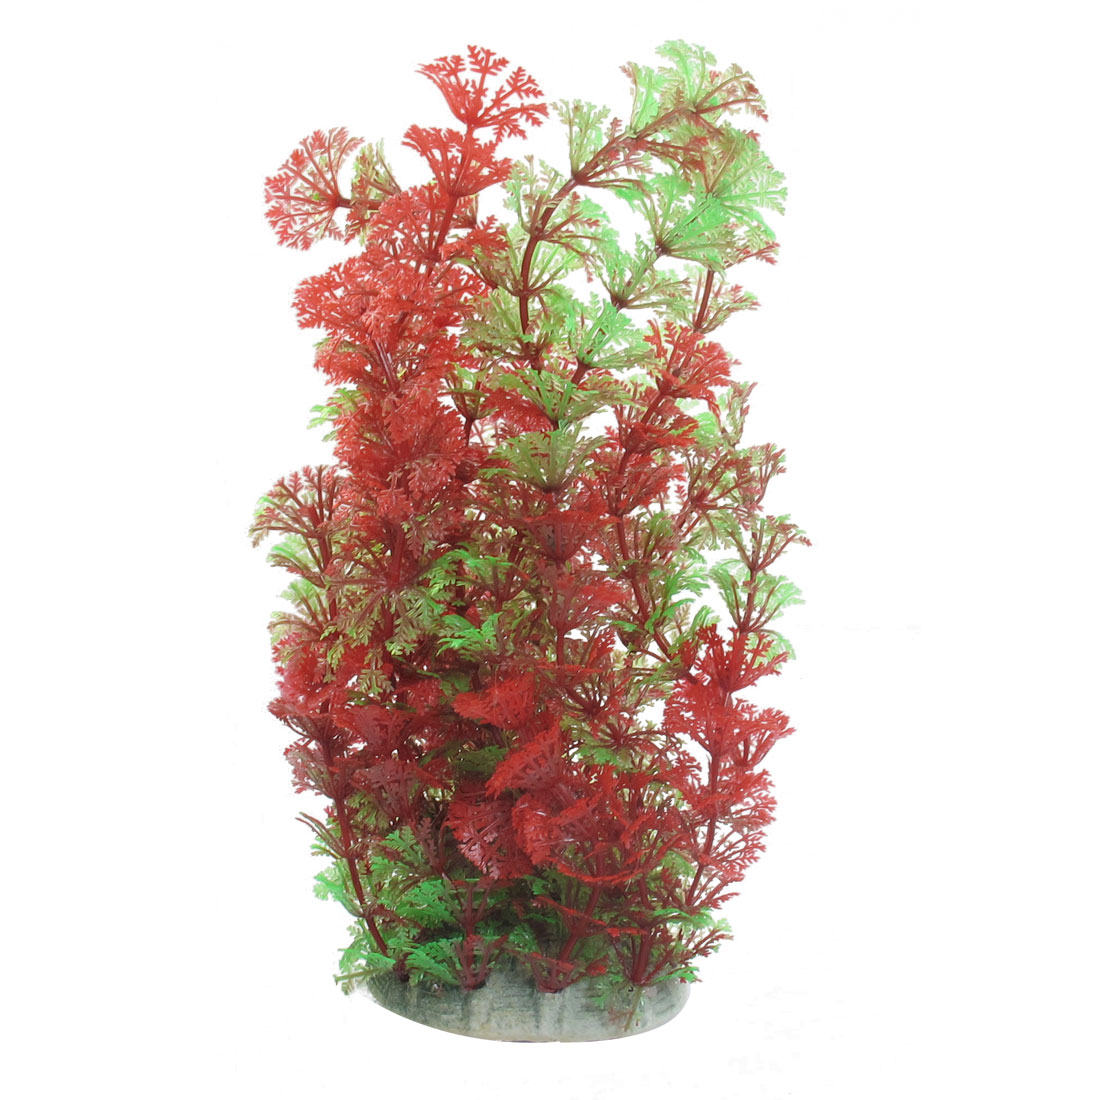 Green Red Small Leaves Manmade Underwater Grass Ornament for Fish Tank